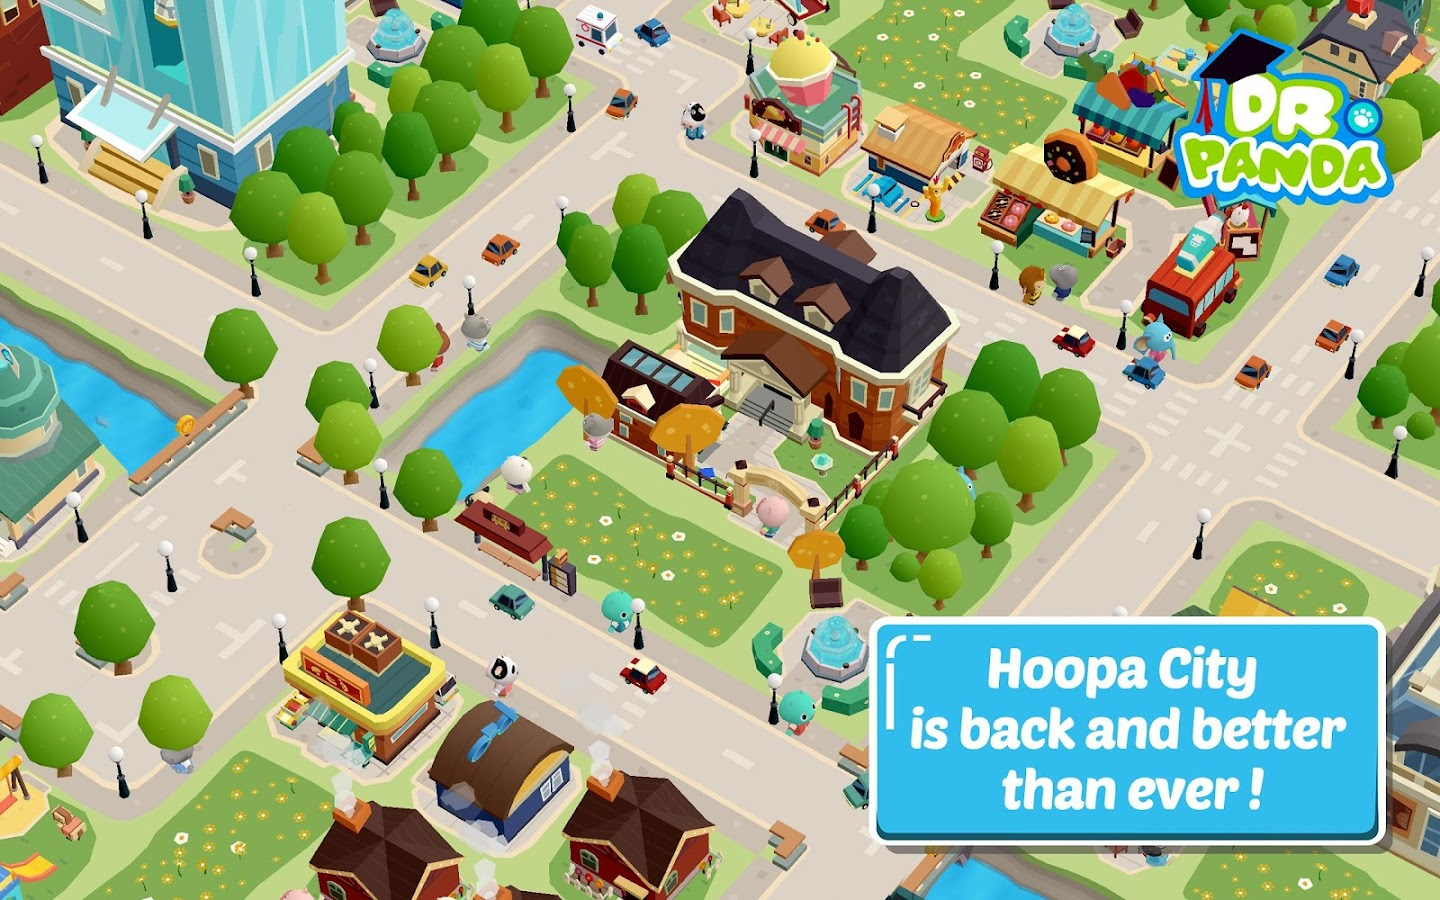 Hoopa City 2 19 1 87 APK Download - Android Simulation Games